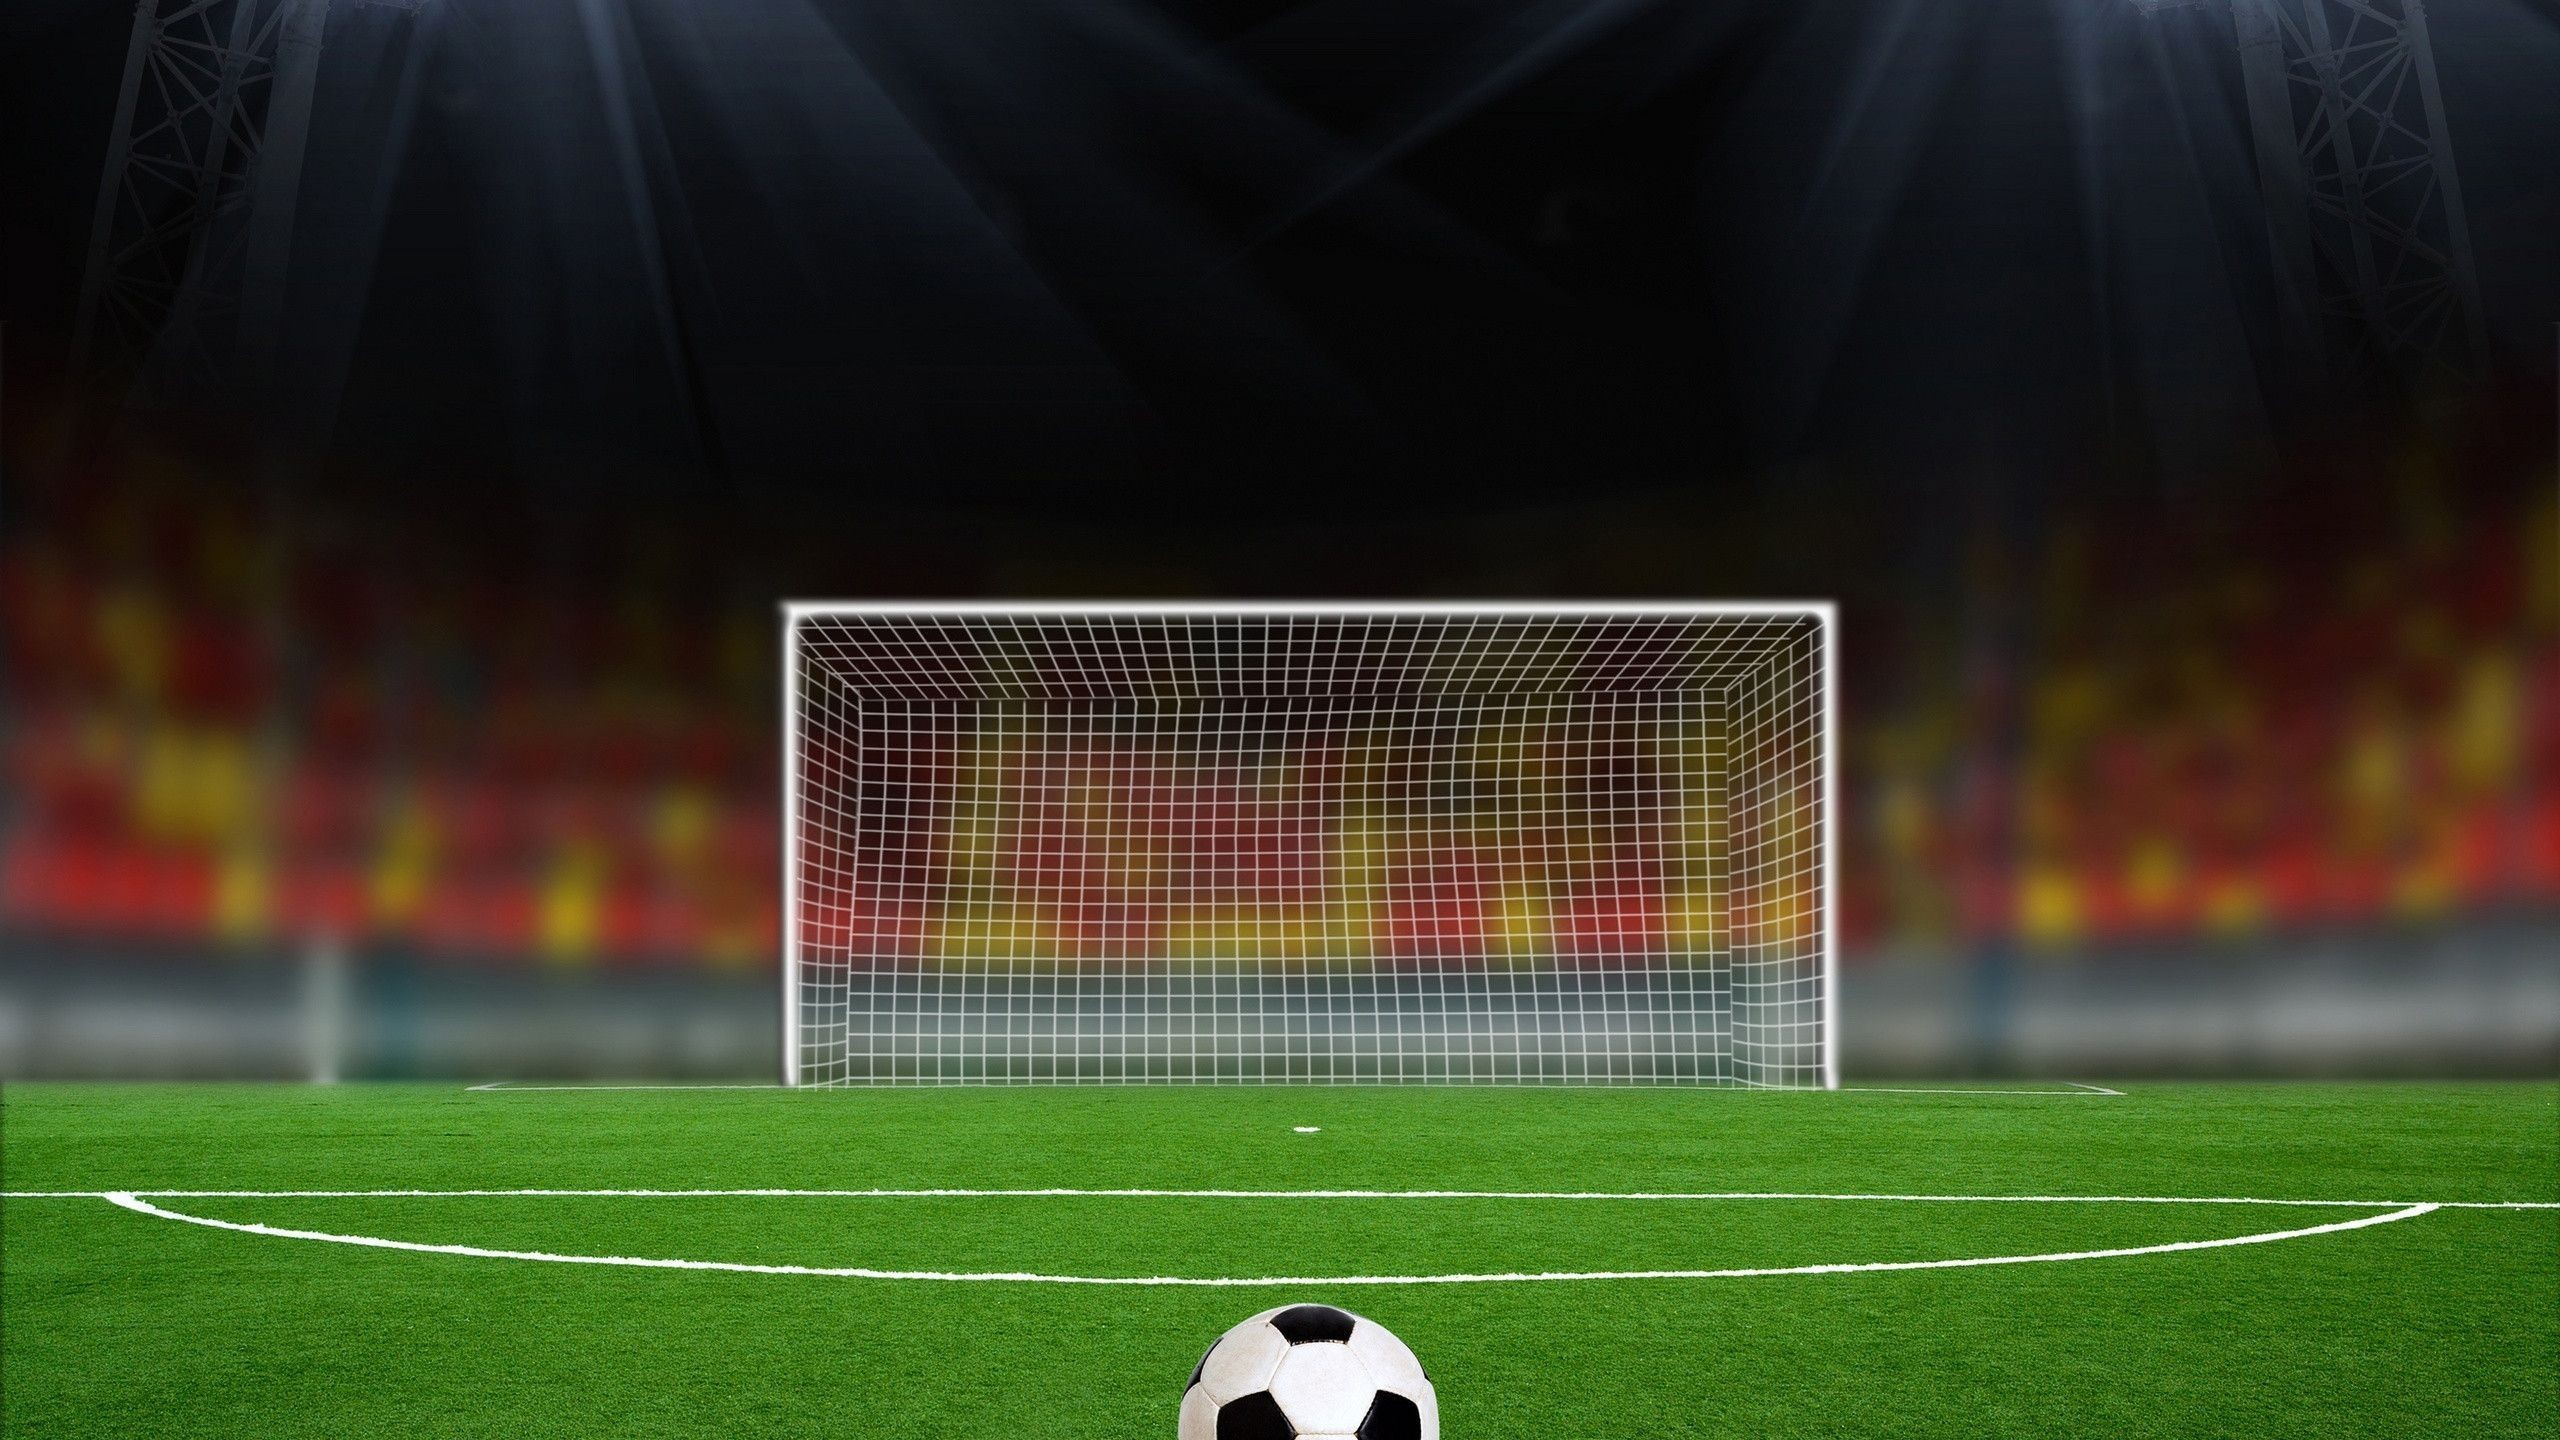 Football Wallpaper Hd Group with items